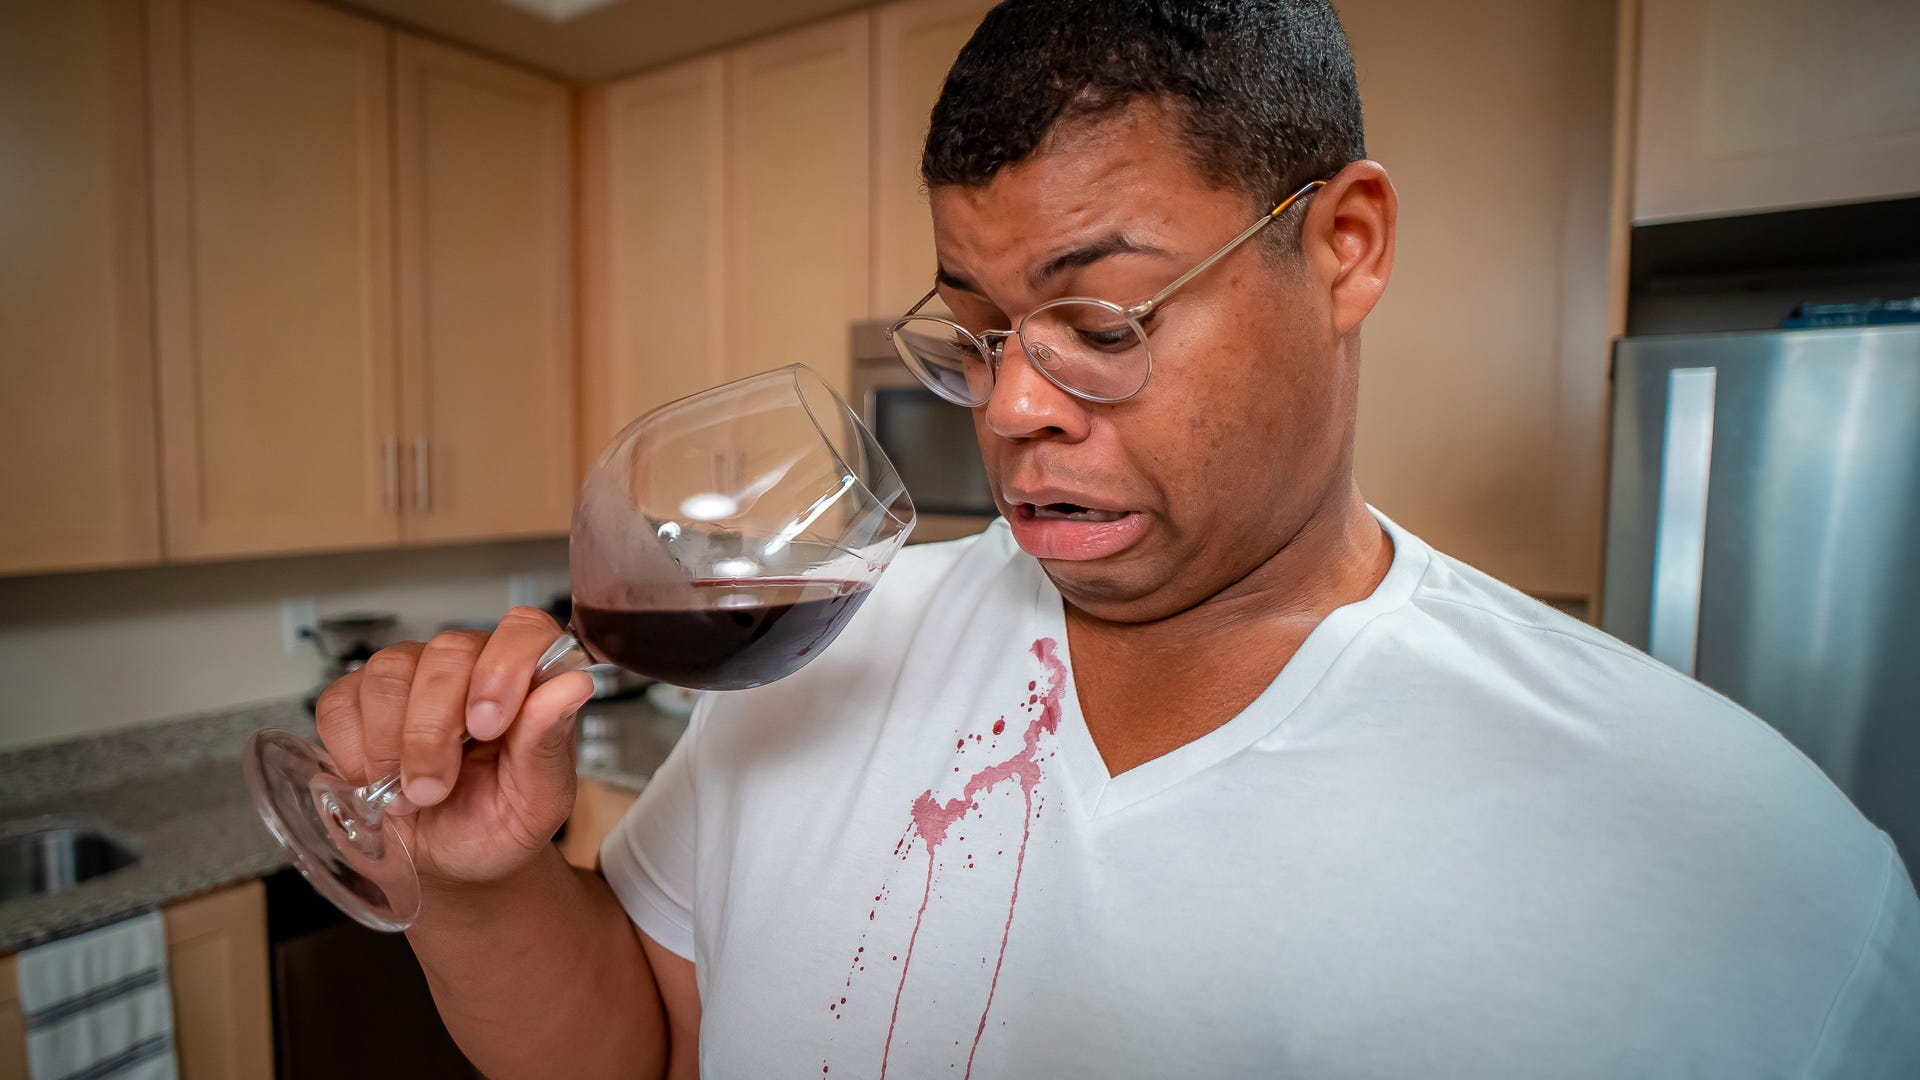 How to remove stubborn red wine stains